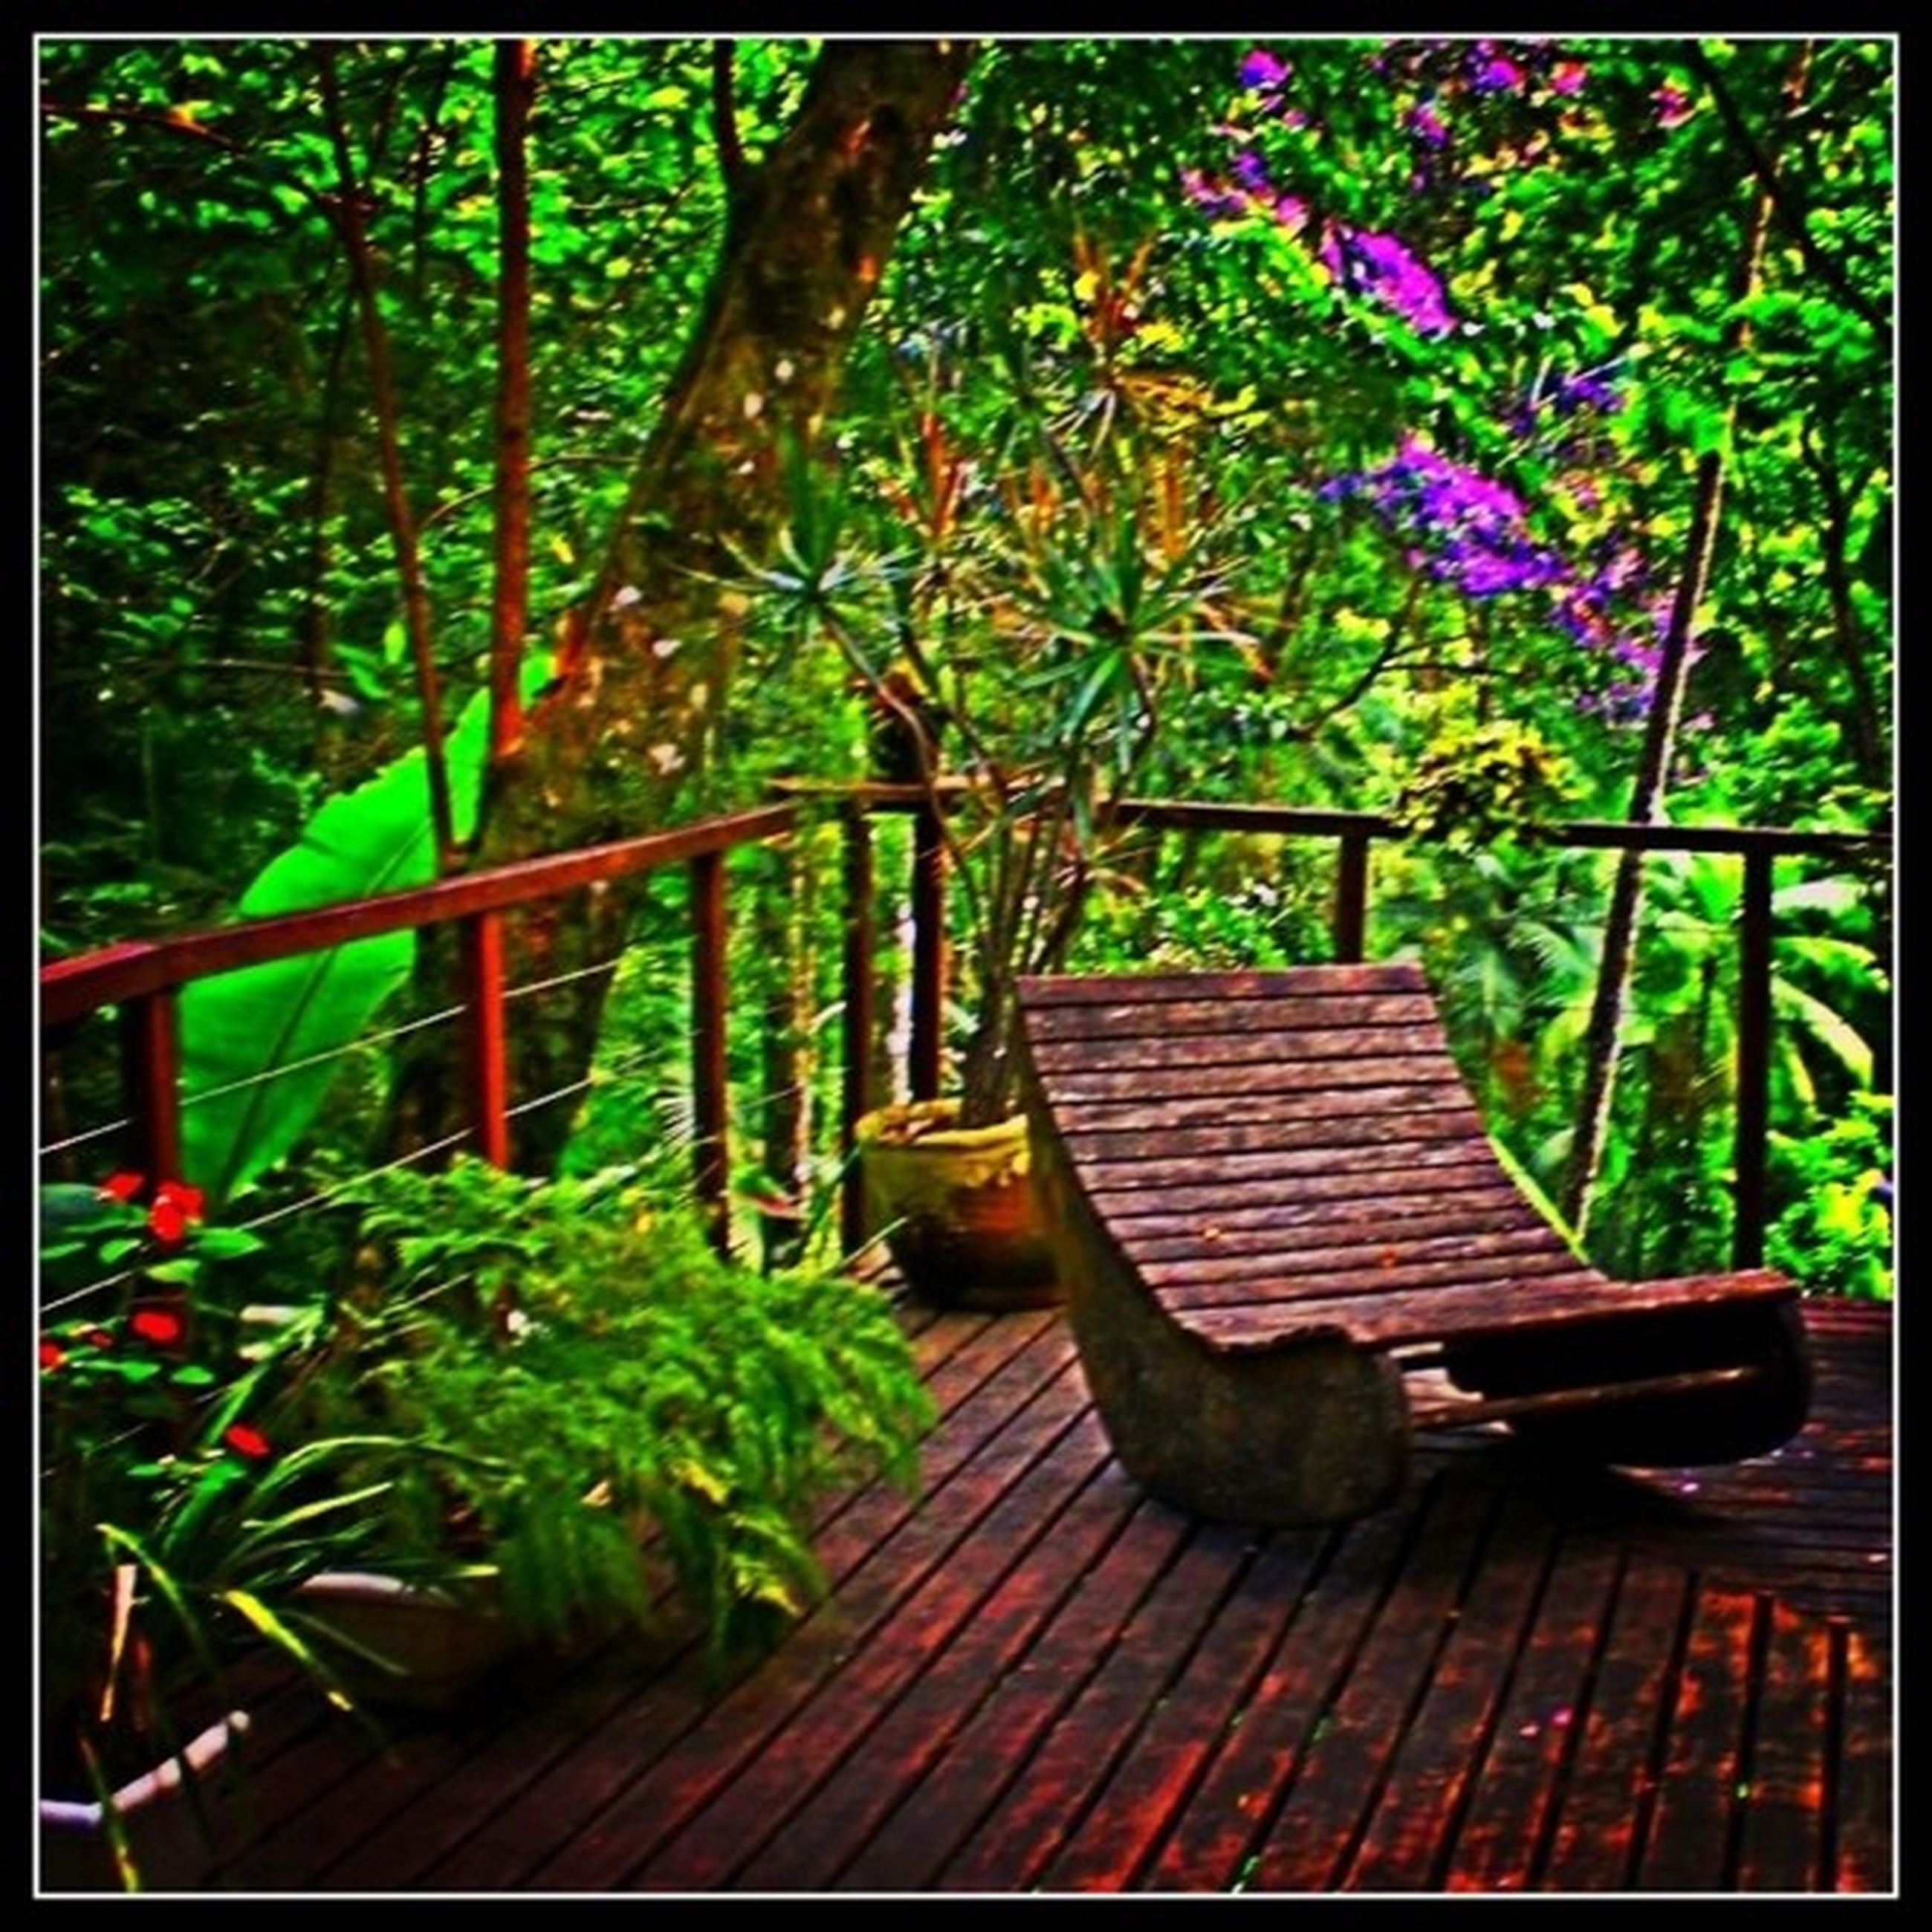 transfer print, growth, bench, tree, wood - material, plant, empty, flower, chair, auto post production filter, absence, park bench, nature, park - man made space, wooden, seat, beauty in nature, front or back yard, potted plant, wood